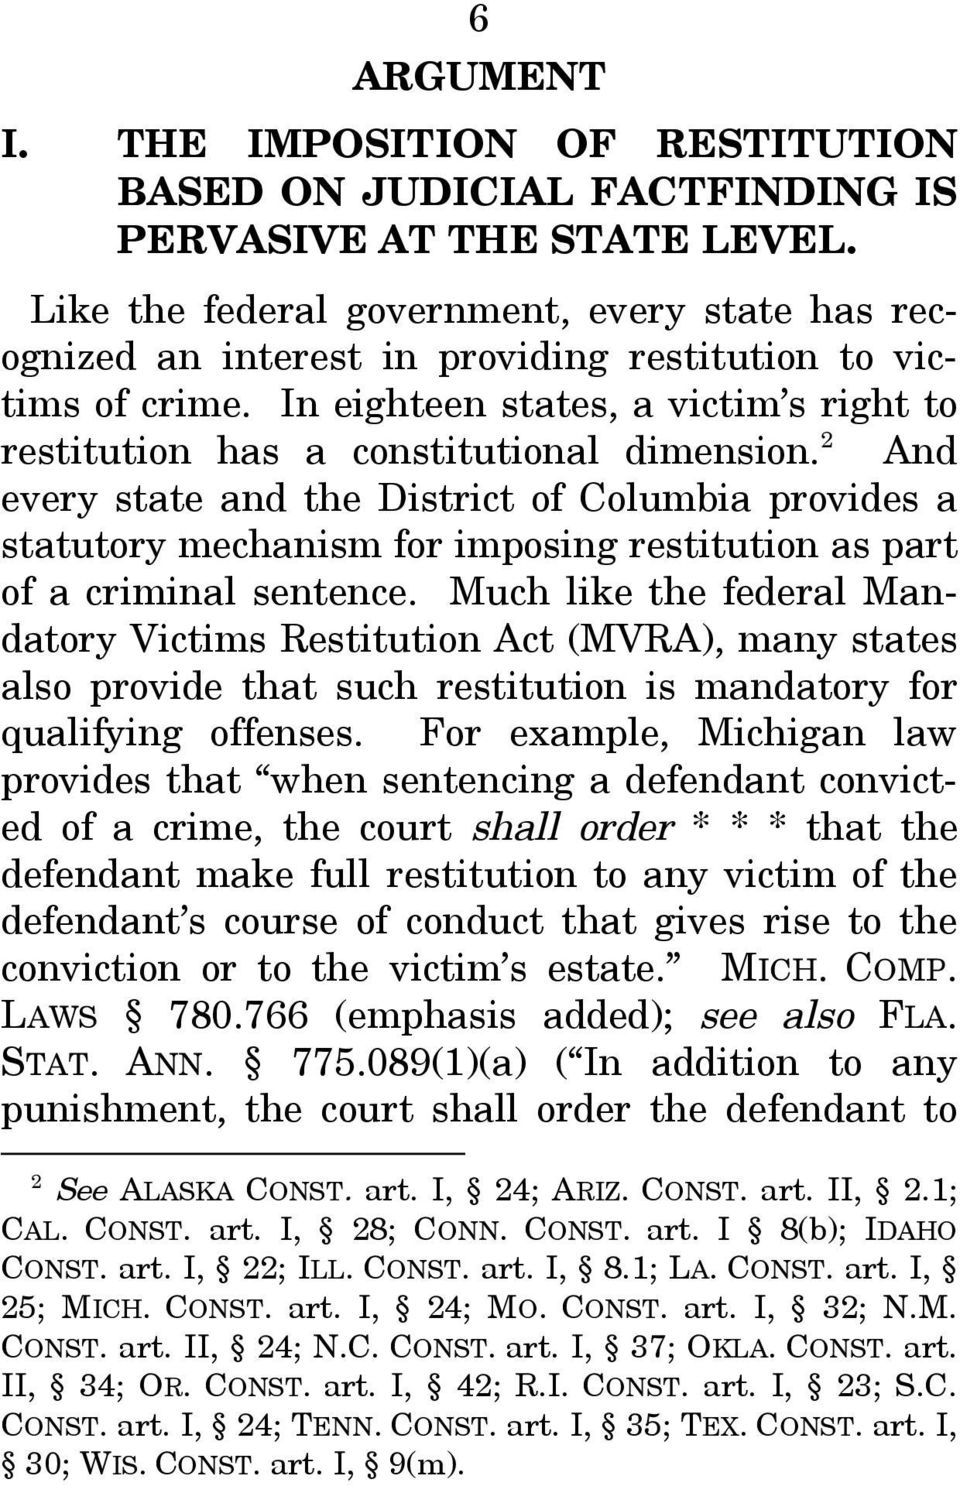 2 And every state and the District of Columbia provides a statutory mechanism for imposing restitution as part of a criminal sentence.